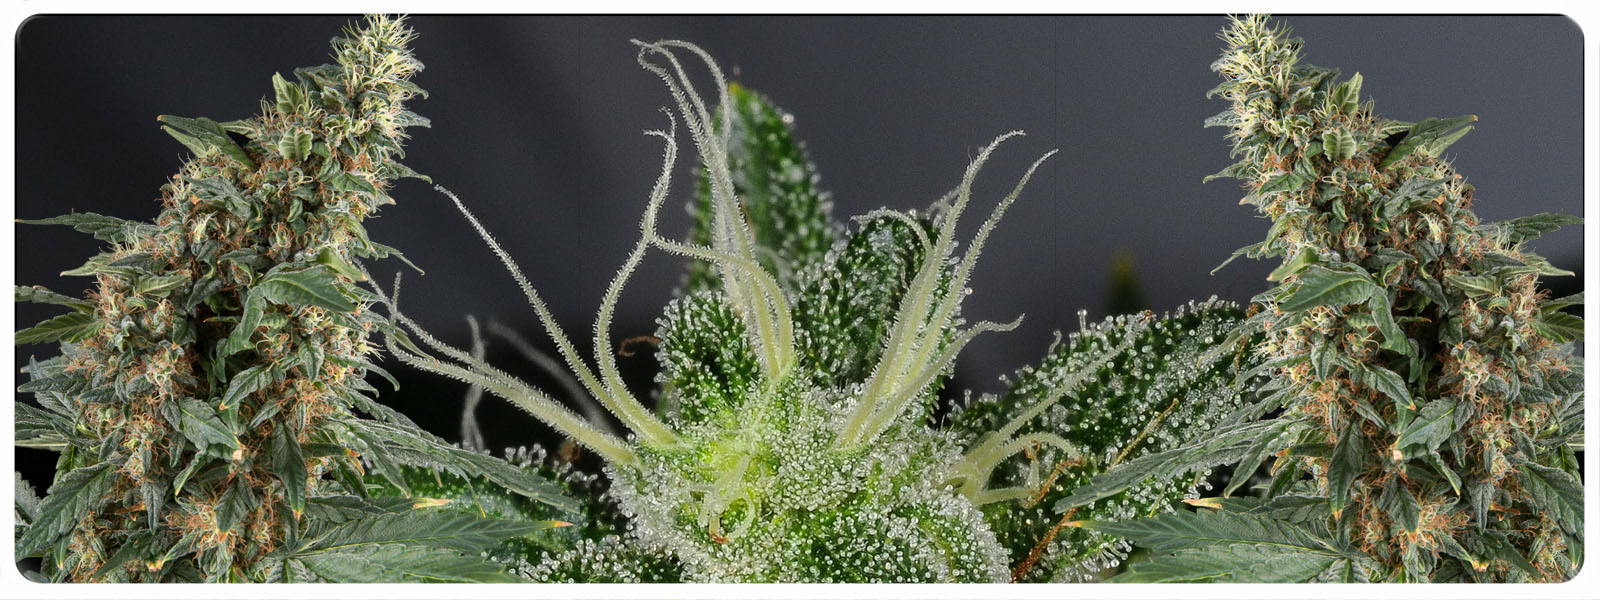 Silverfields is a regular cannabis strain that gives green and purple / pink flowers that are dripping from potency